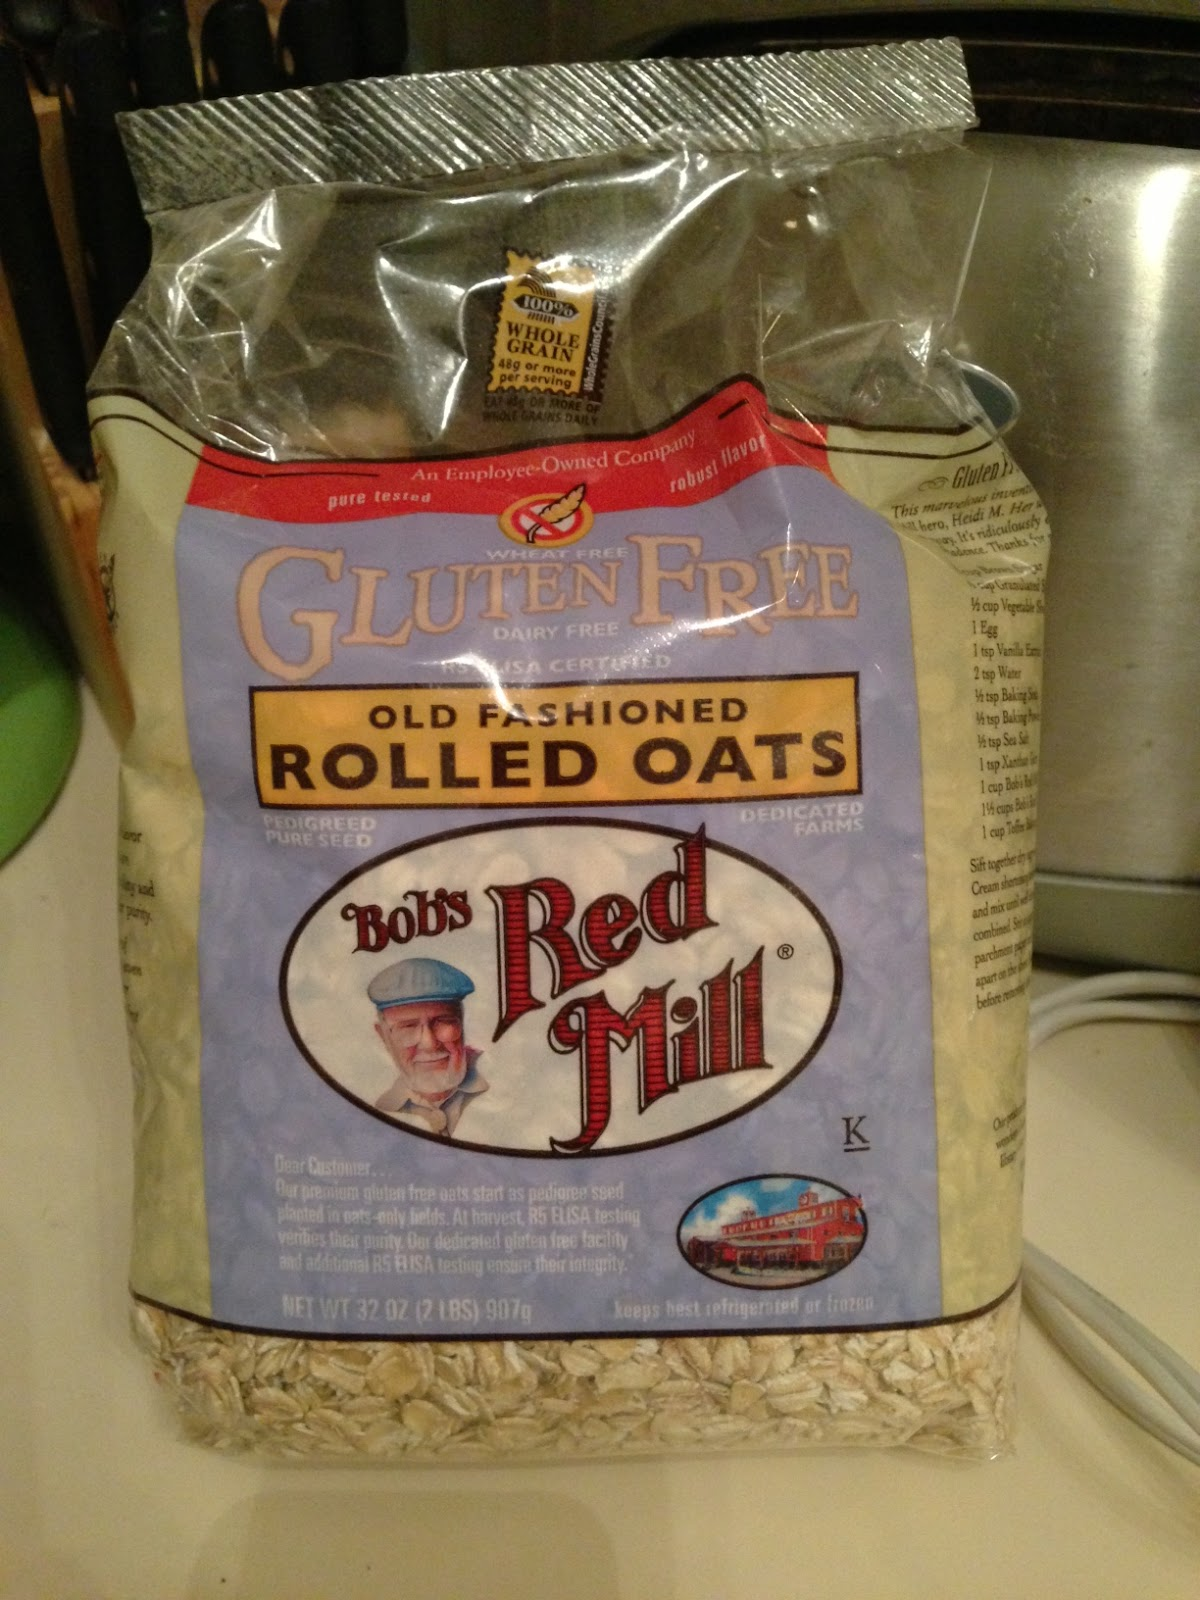 Rolled oats vs old fashioned 41